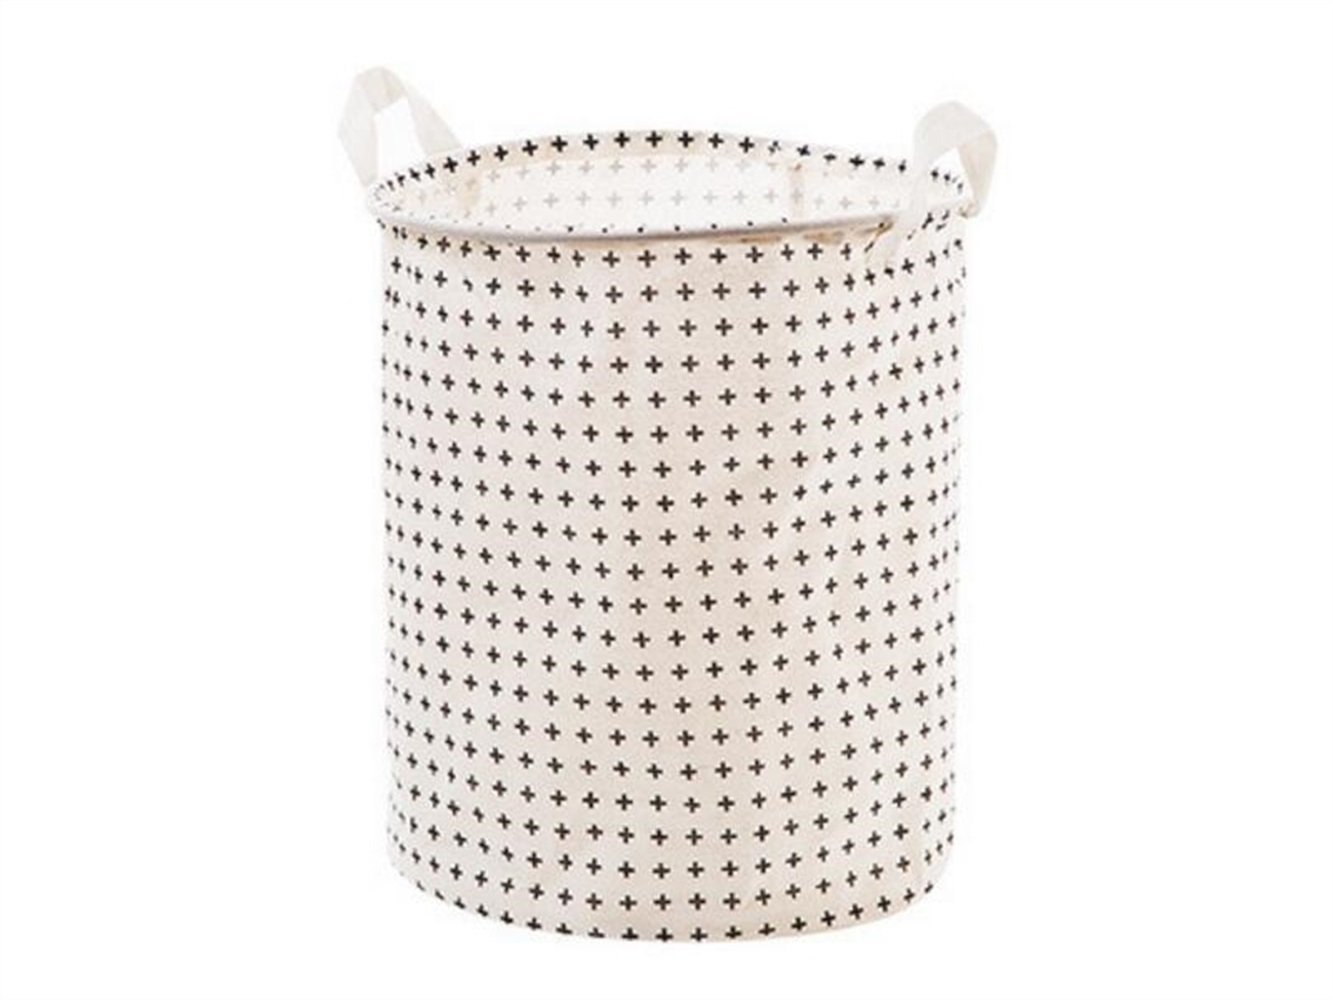 Gelaiken Lightweight Plus Pattern Tote Storage Basket Waterproof Storage Bucket Cotton and Linen Storage Box (White)